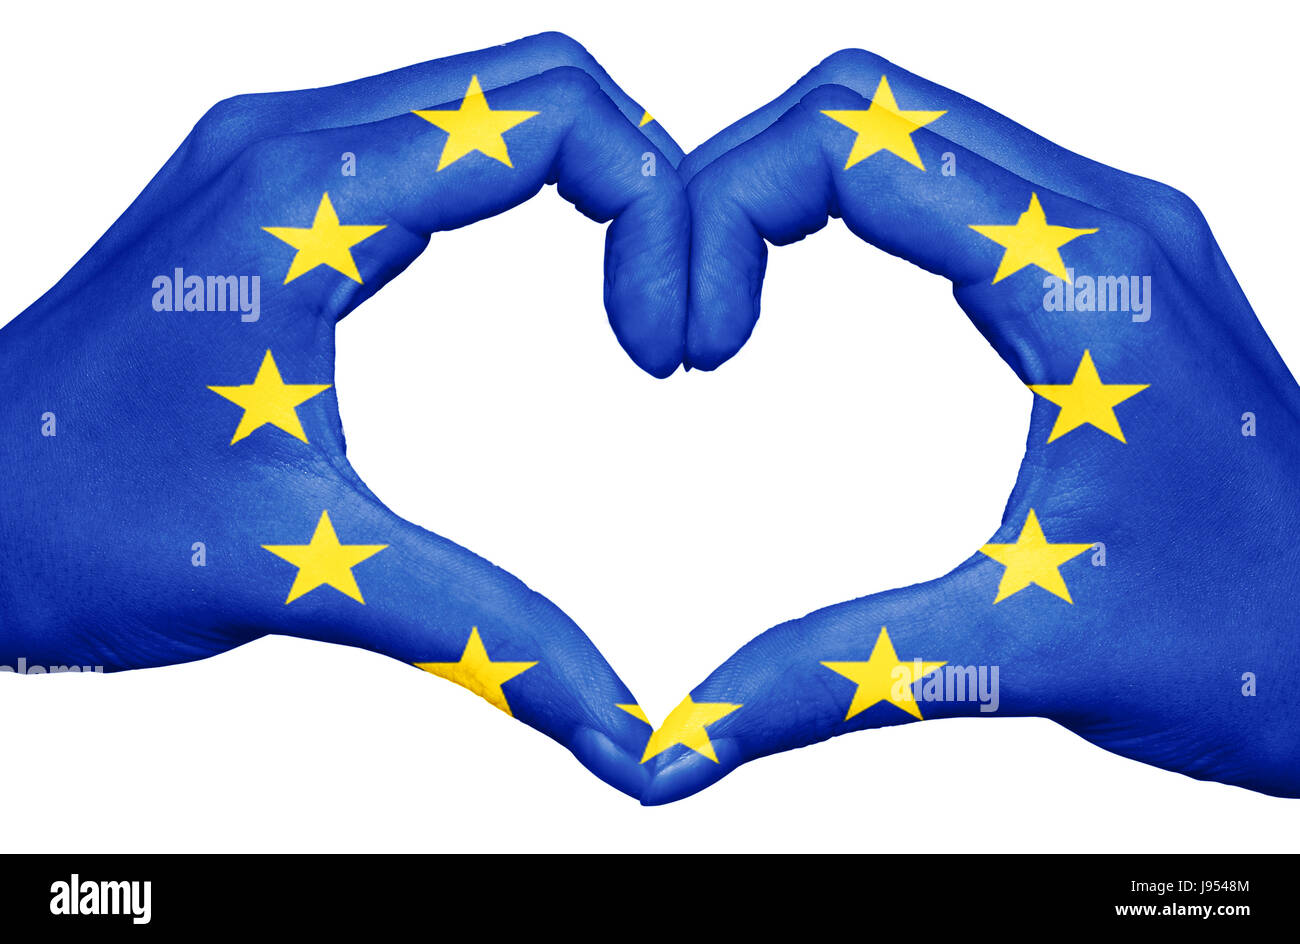 European union flag painted on hands forming a heart isolated on white background, europe concept - Stock Image